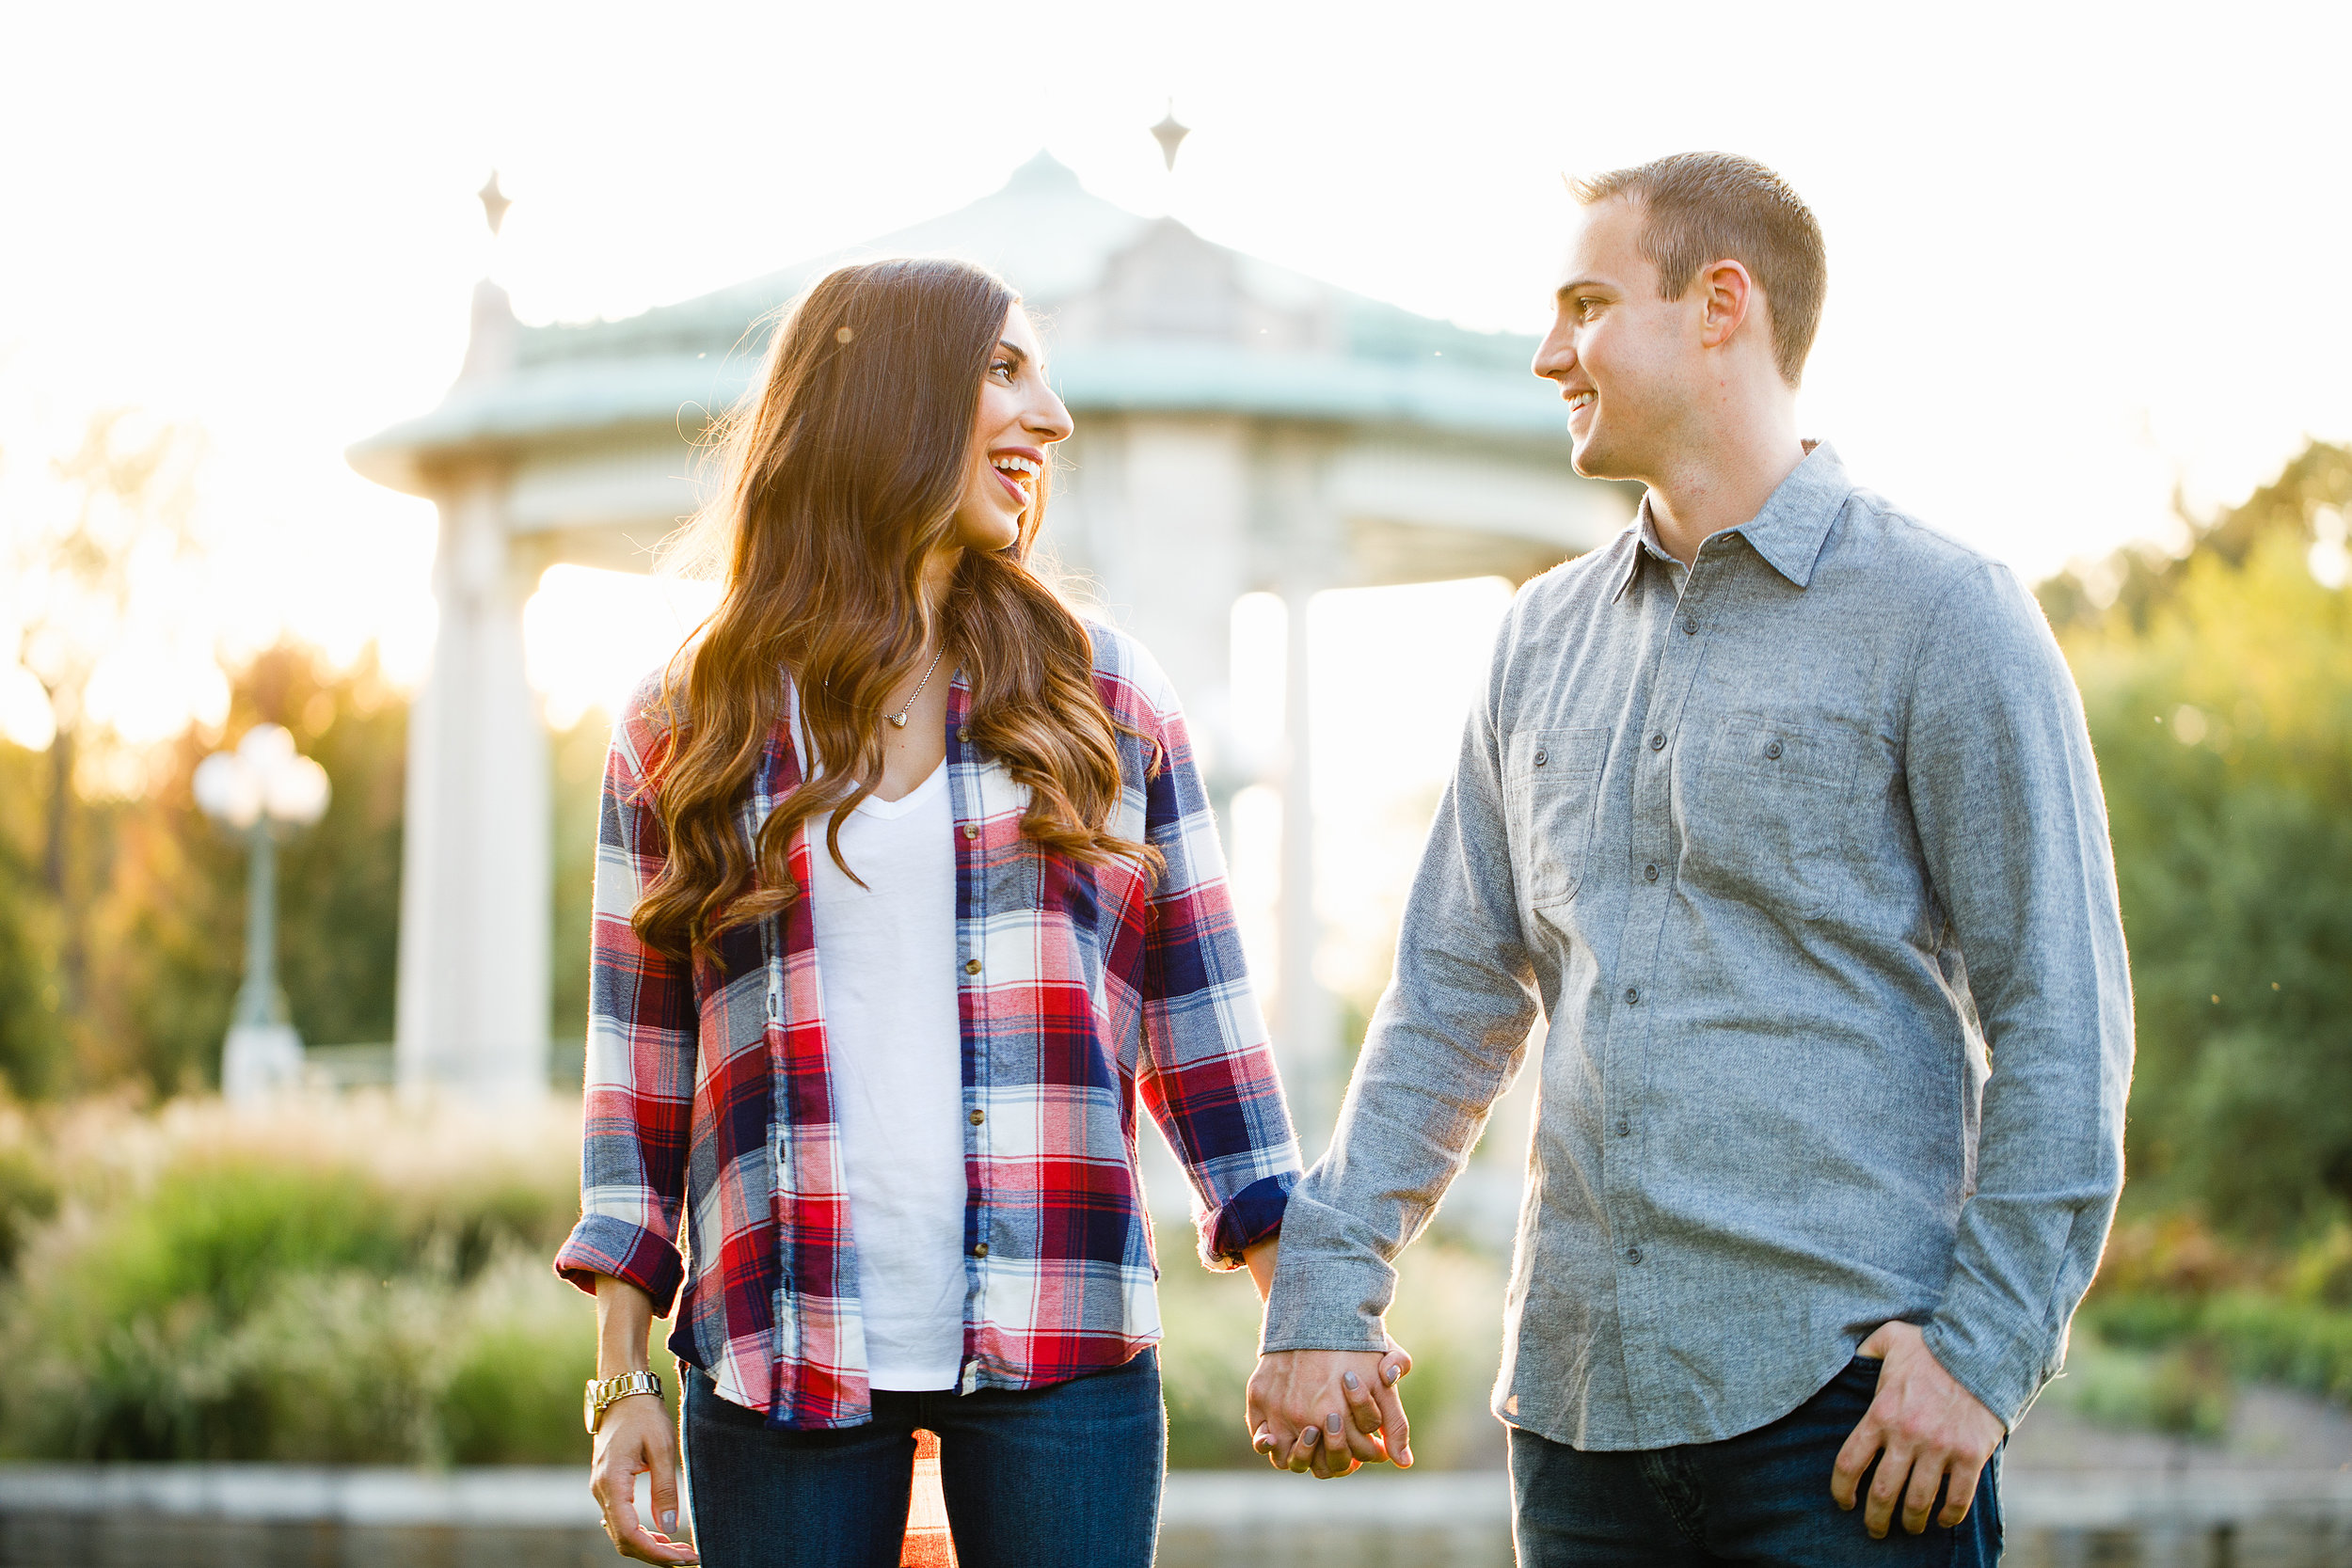 Forest Park Engagement Photos by St Louis Wedding Photographers and Videographers Oldani Photography 20.jpg